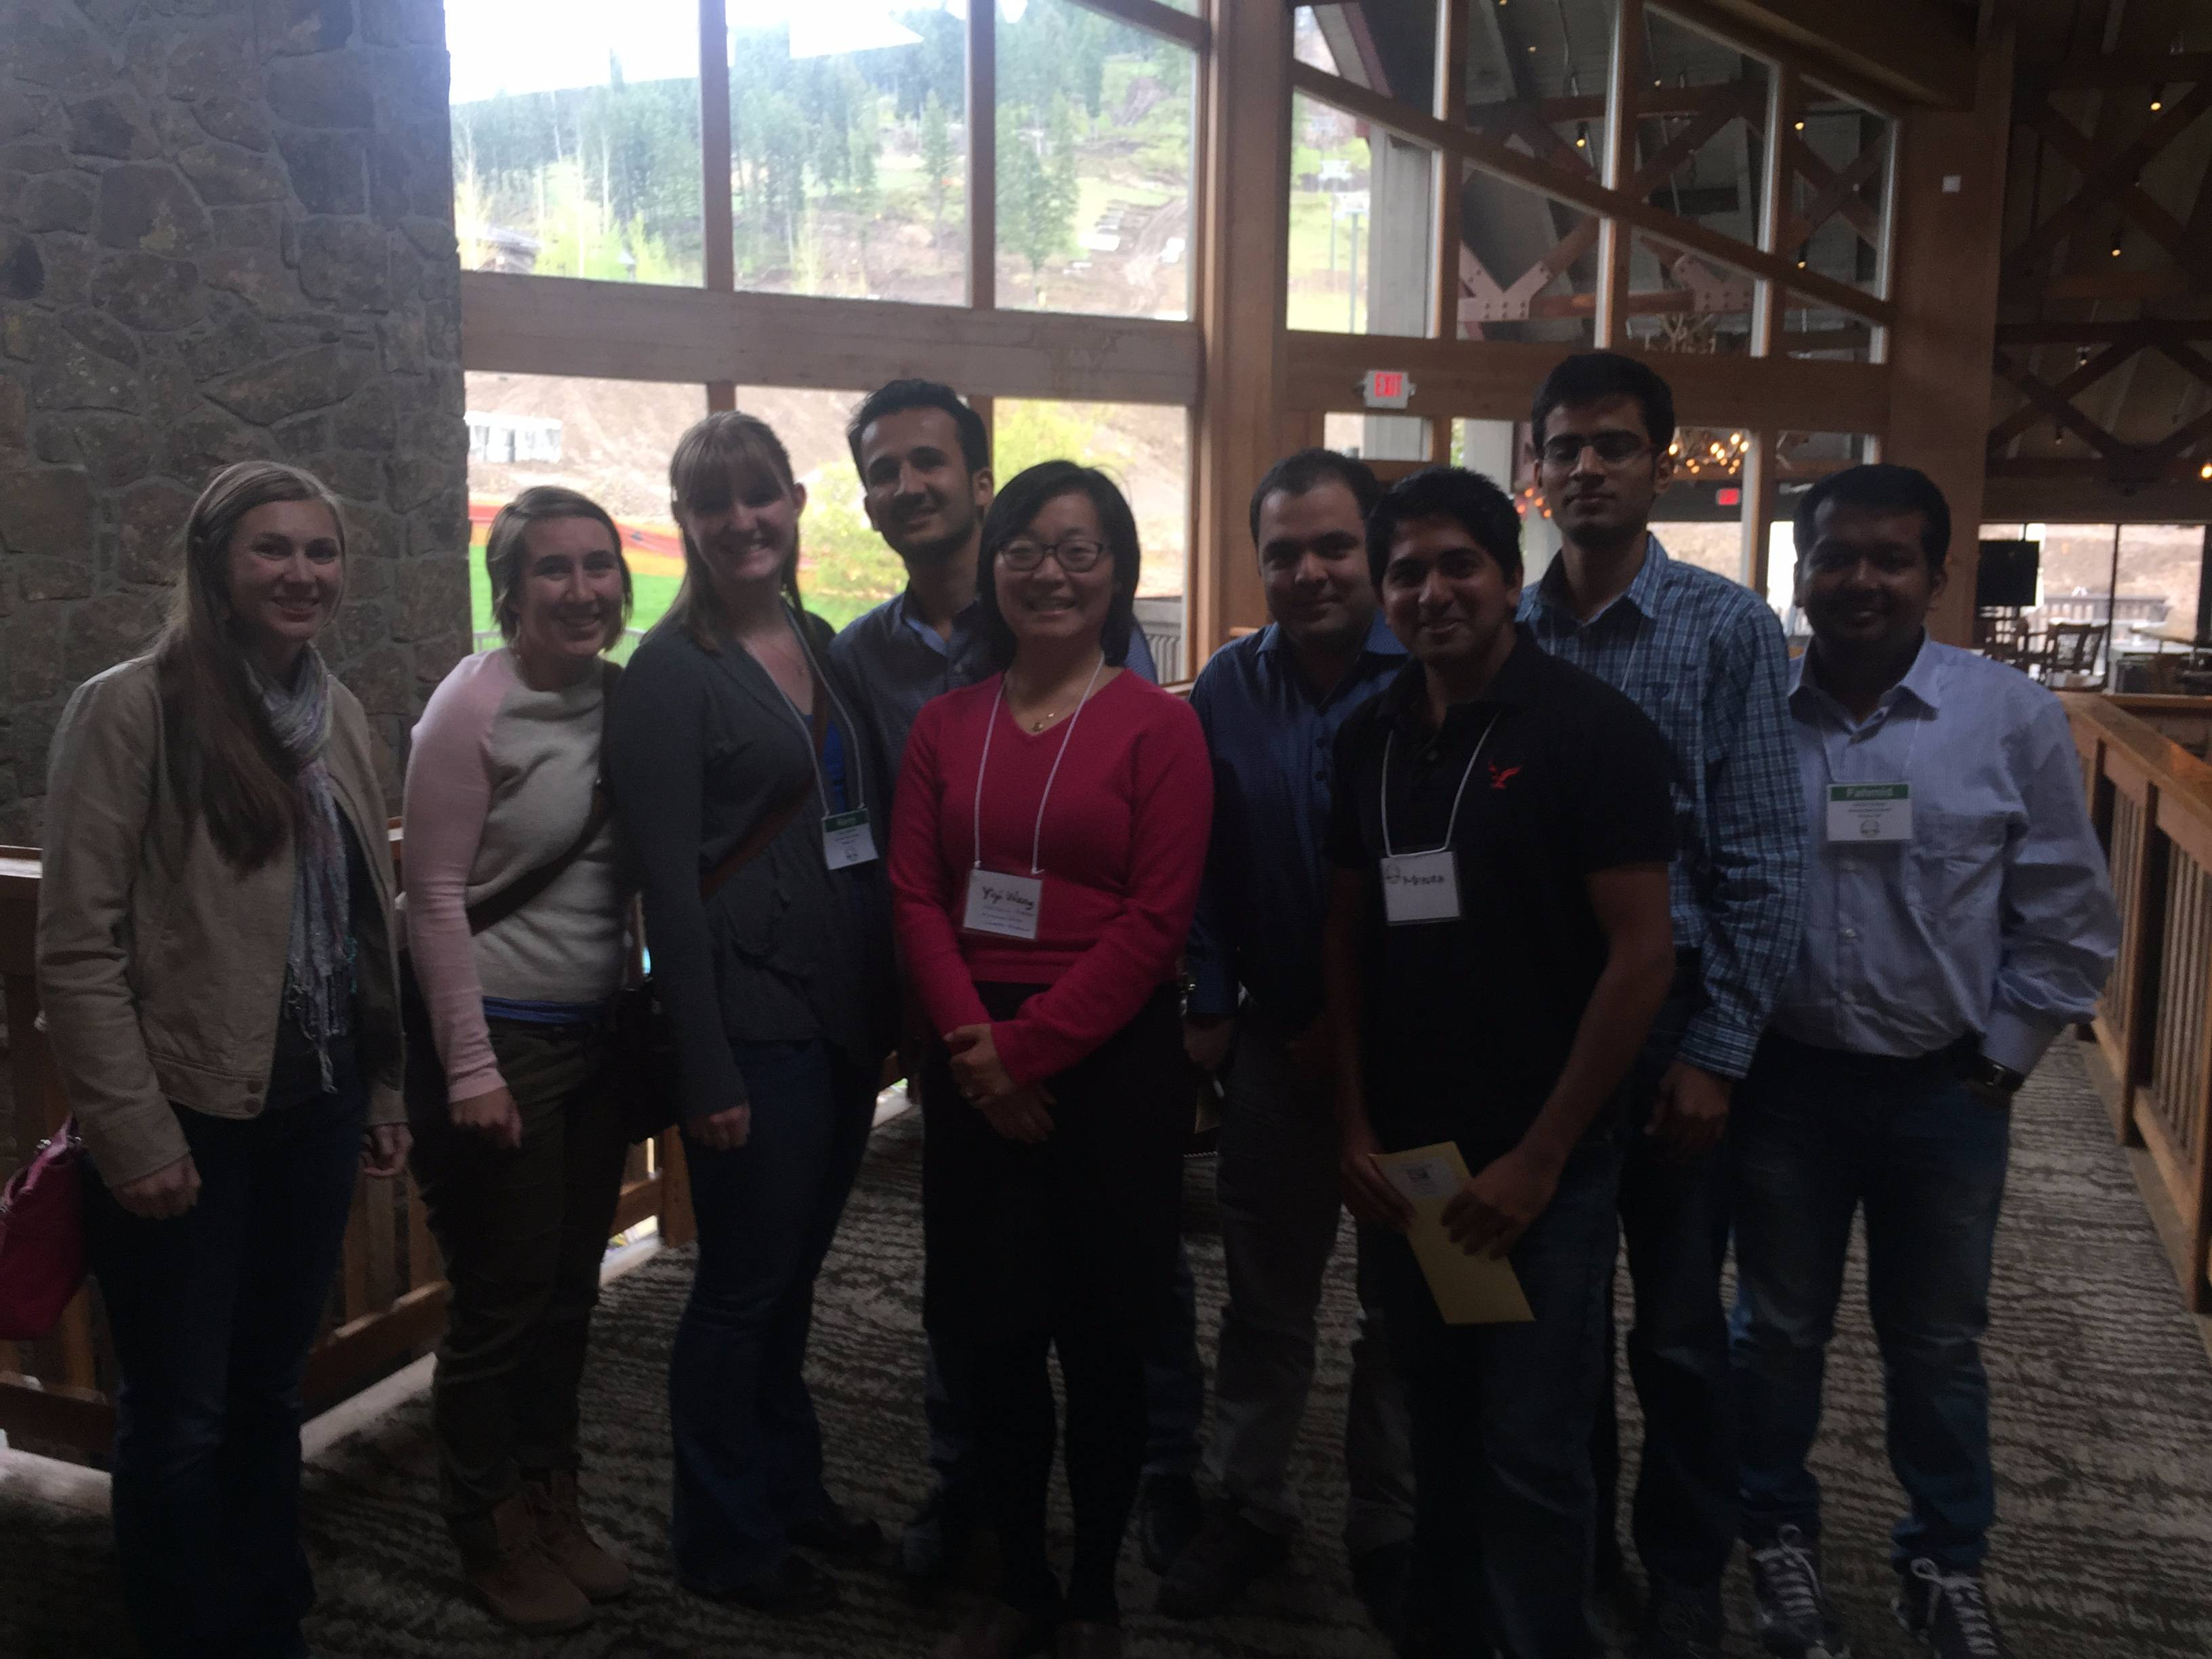 Institute of Transportation Engineers Intermountain Conference 2015, Jackson Hole, Wyoming